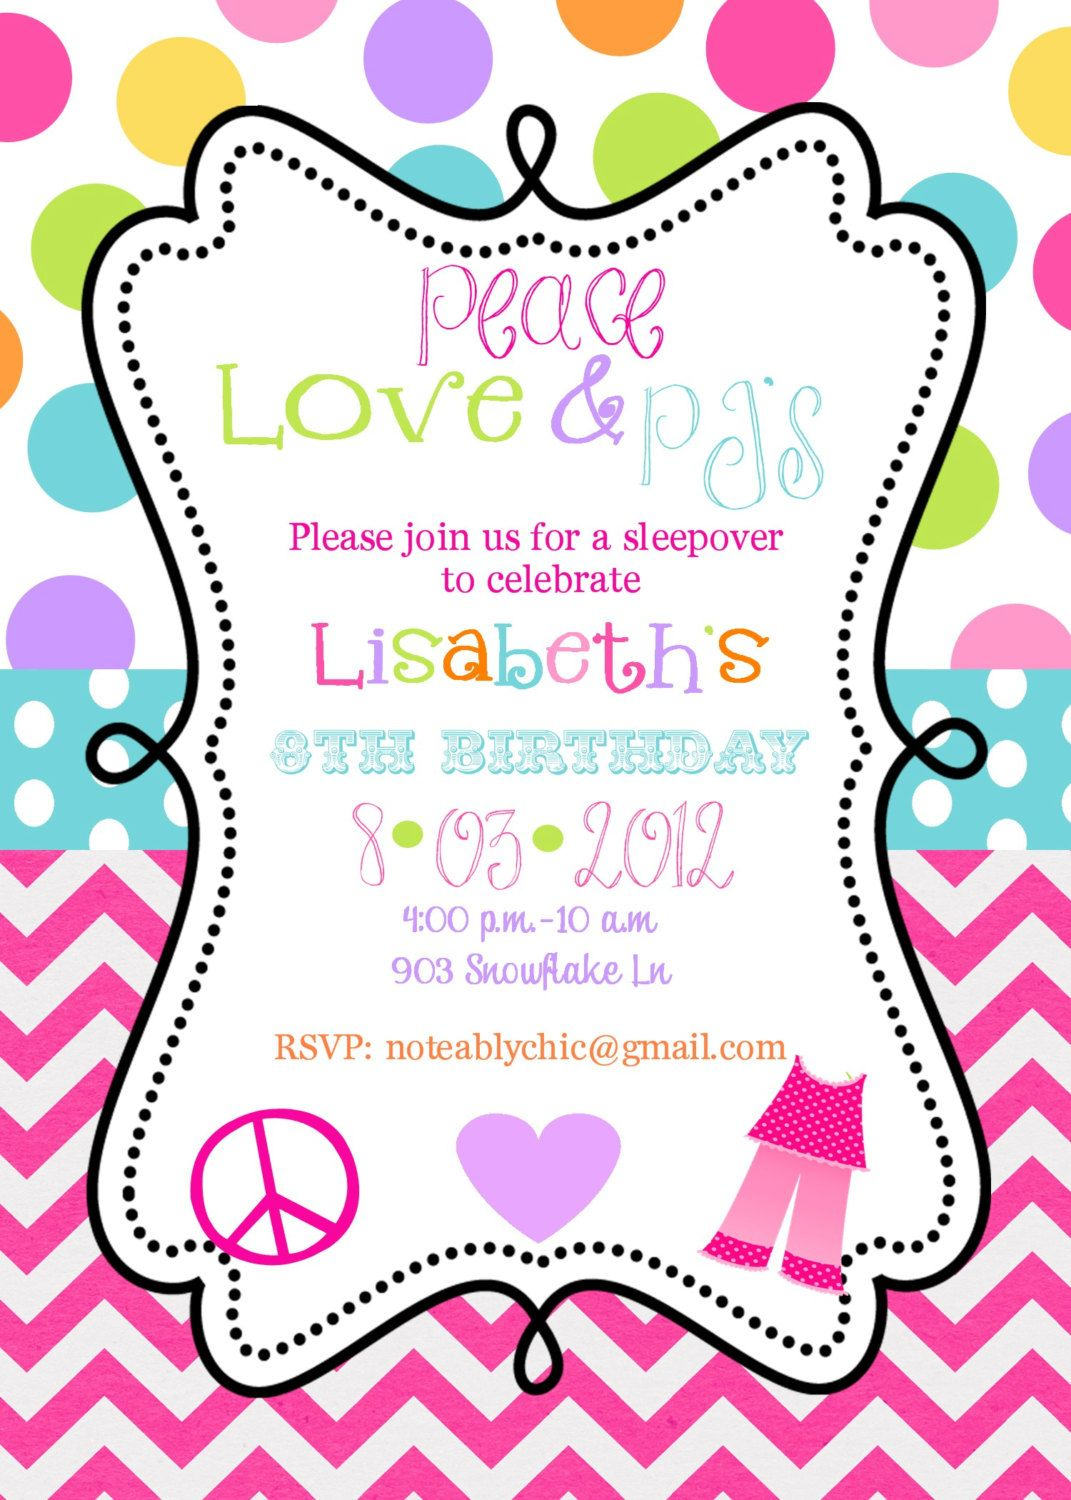 Free birthday invitations templates my birthday pinterest free birthday invitations templates stopboris